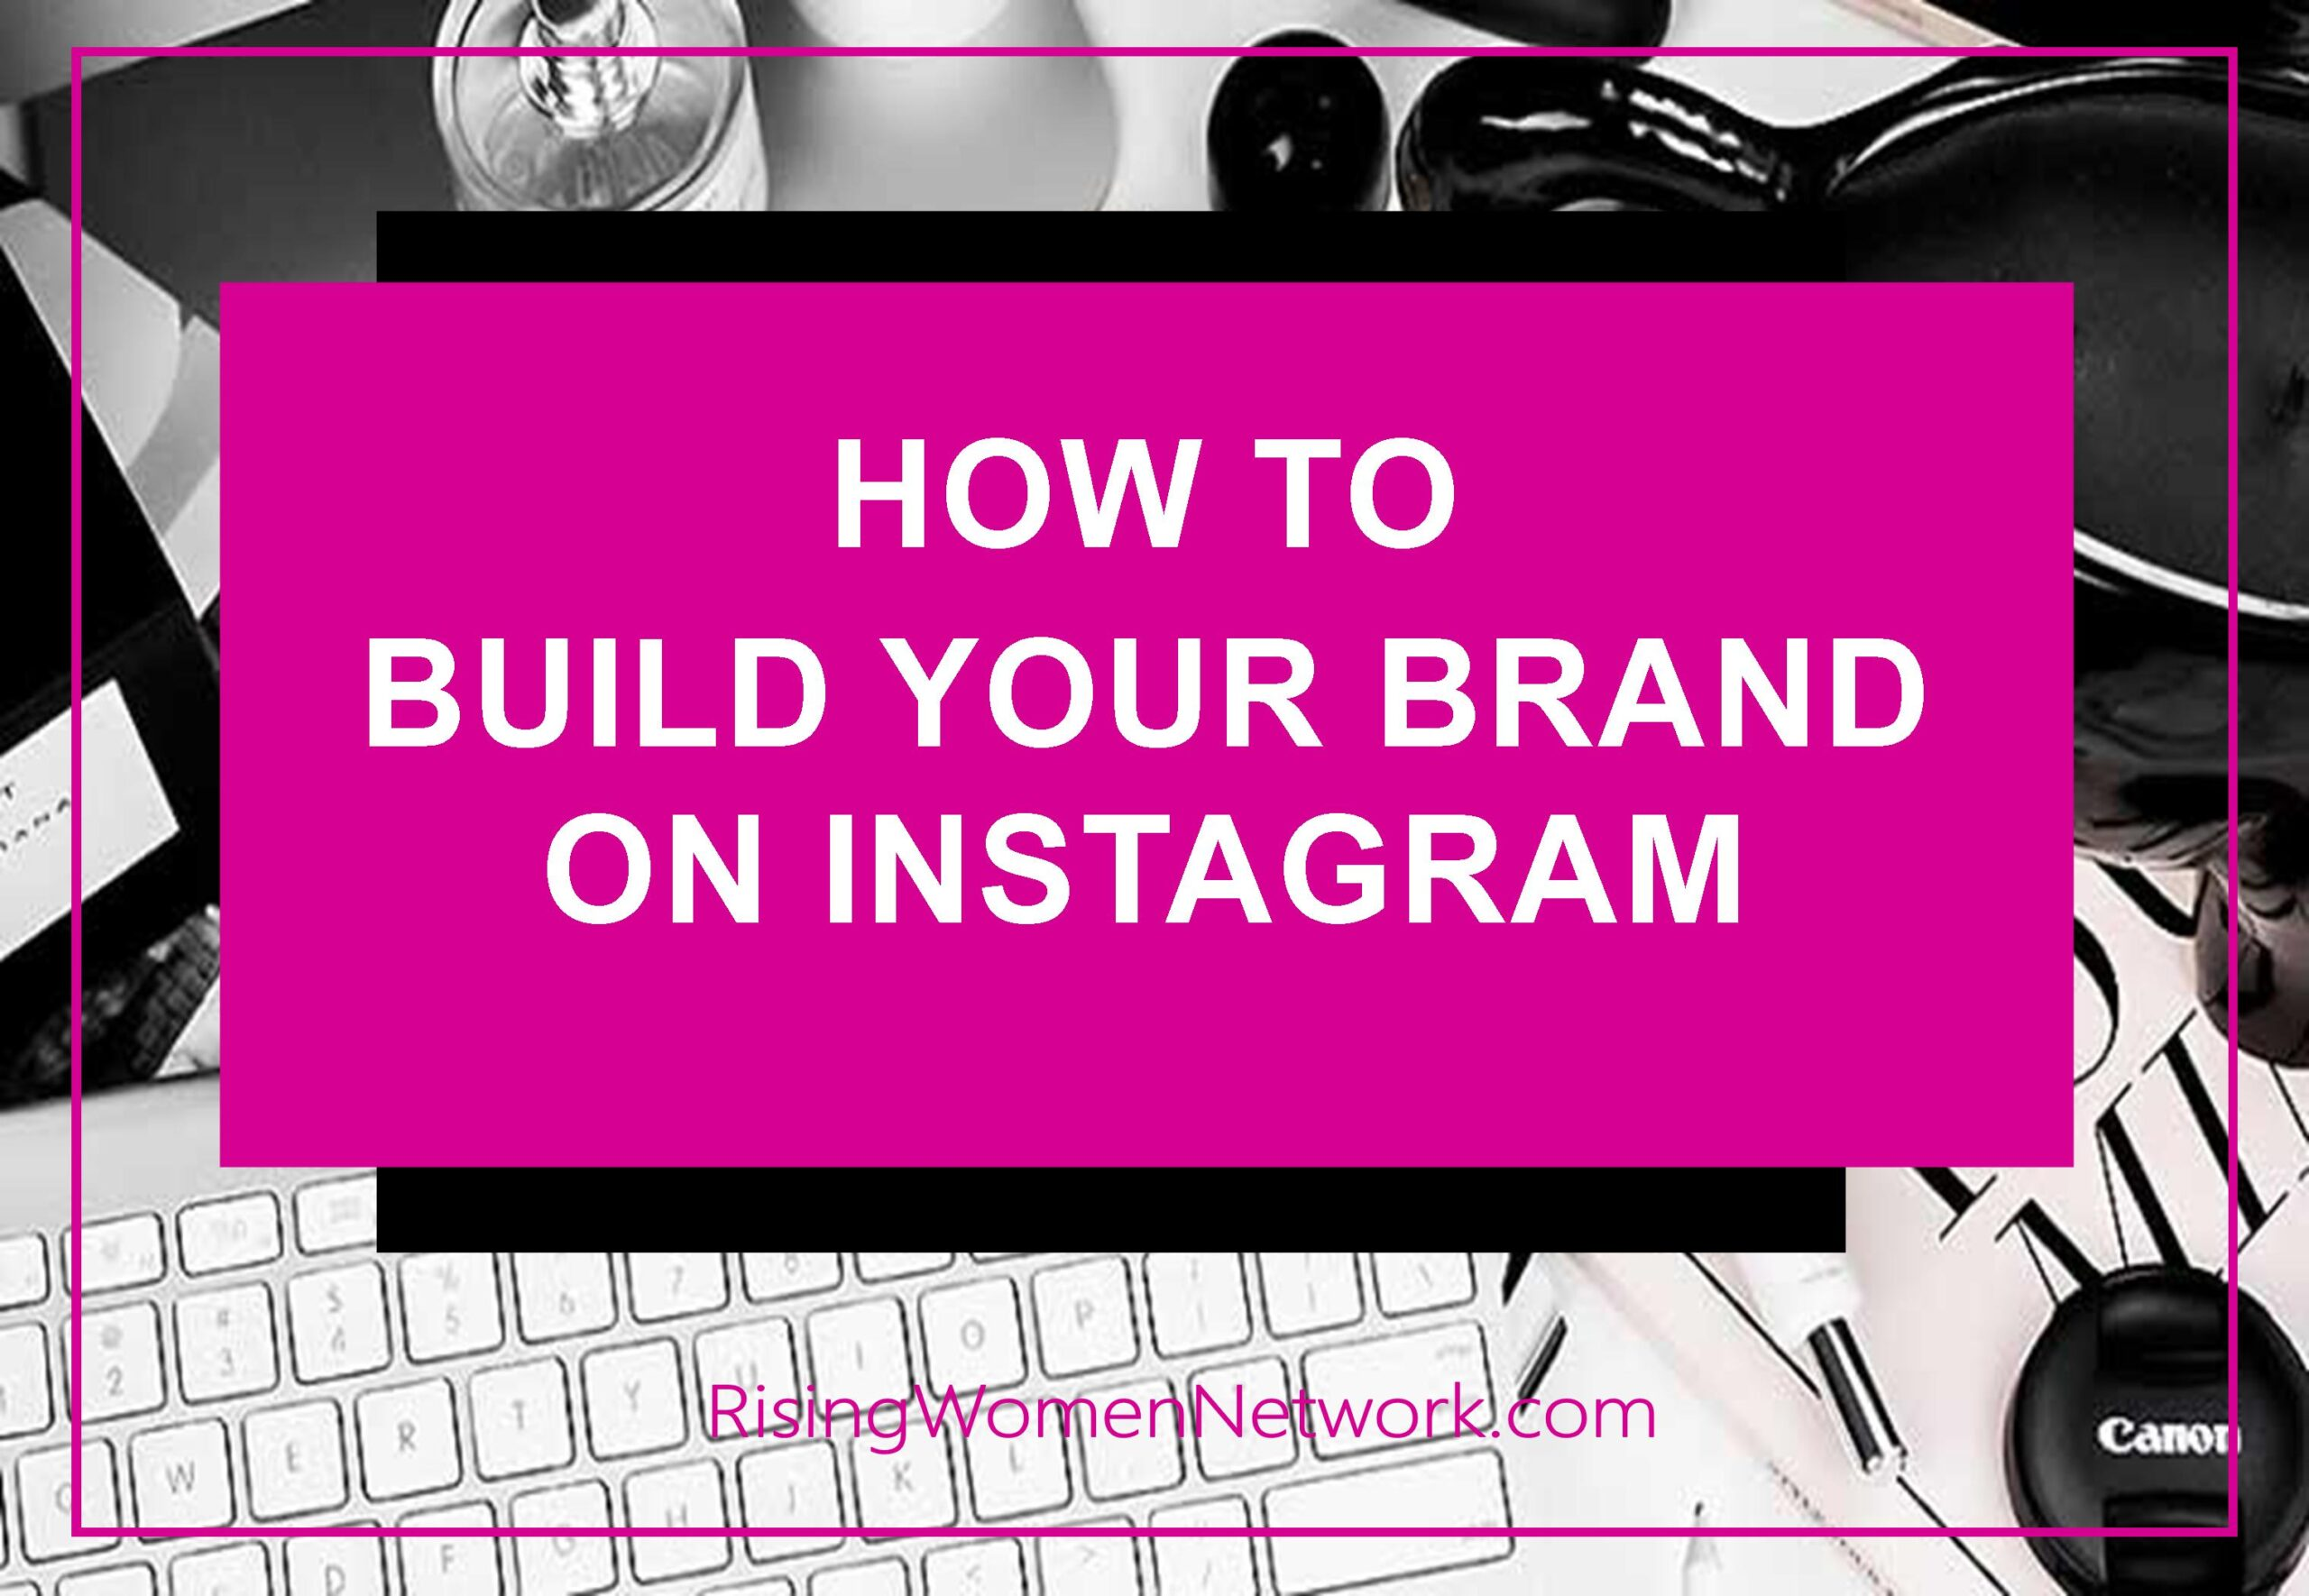 How can you make yourbusiness narrative seen through a consistent, visually appealing brand? Five factors that will ensure your Instagram feed looks great.